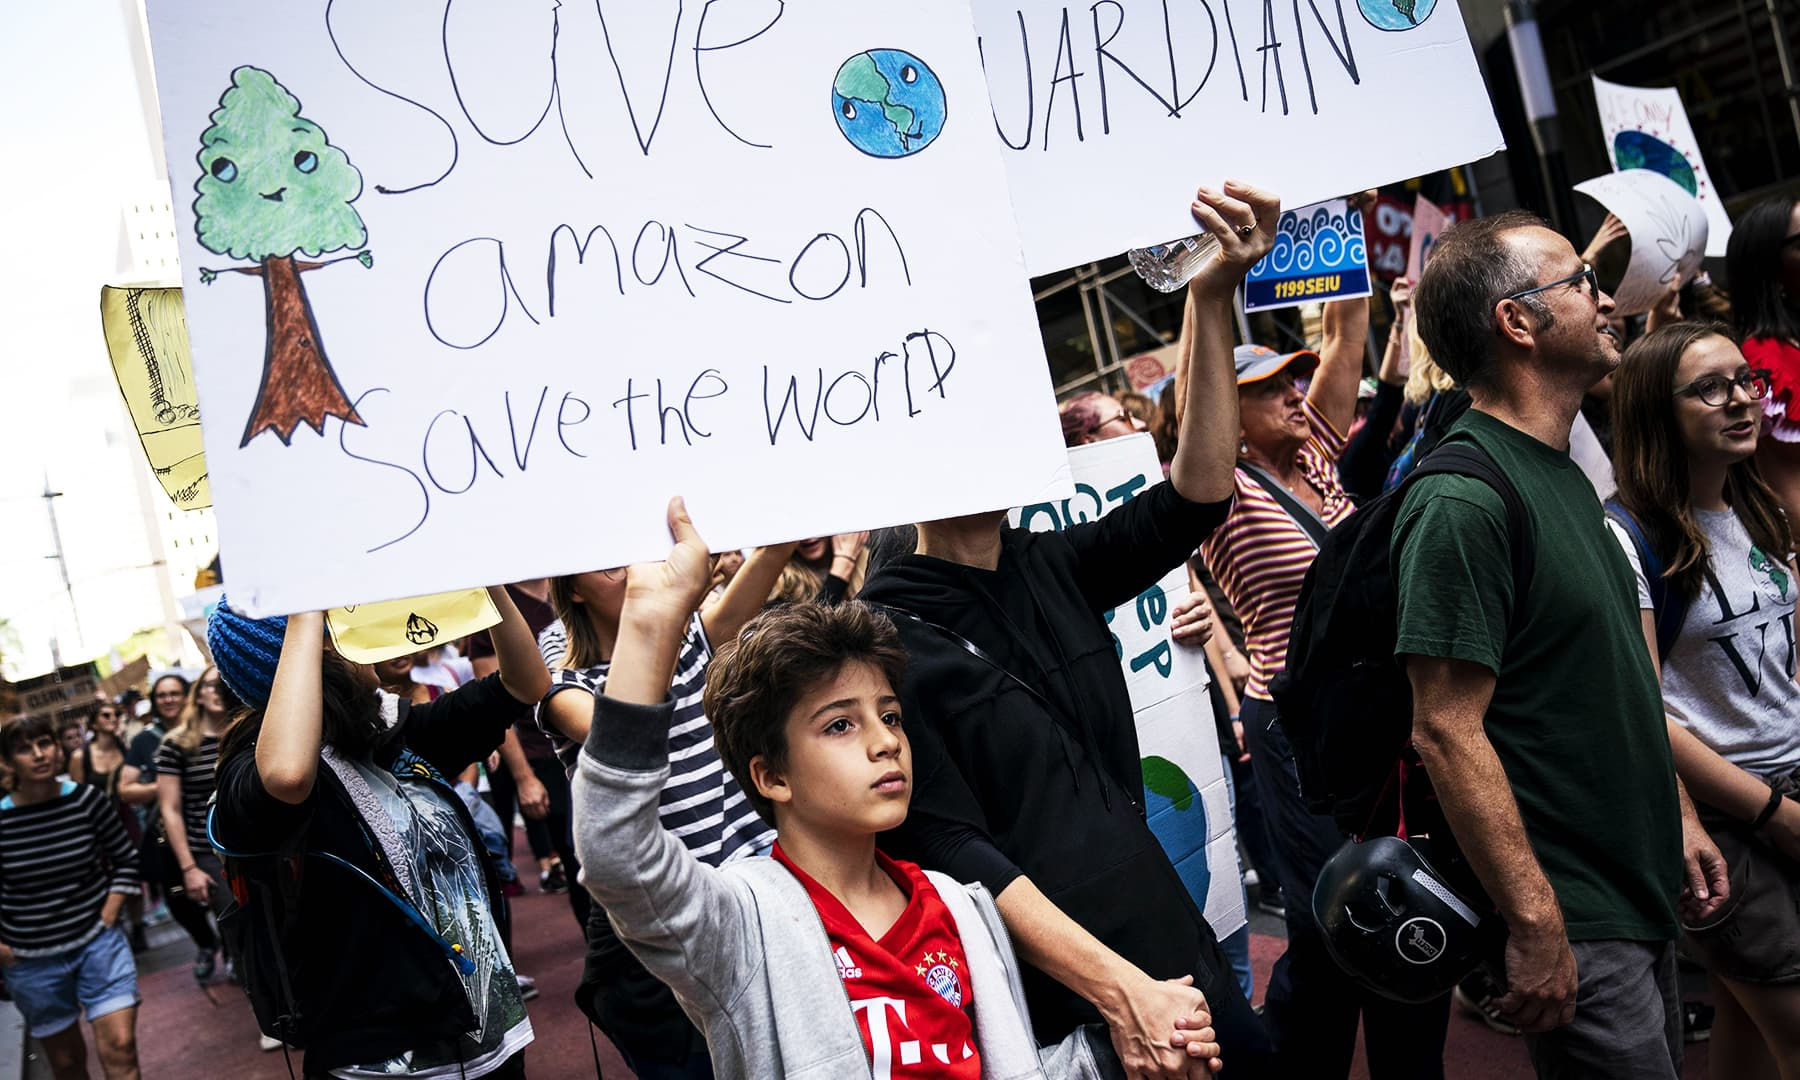 Young activists and their supporters rally for action on climate change in New York City. — AFP